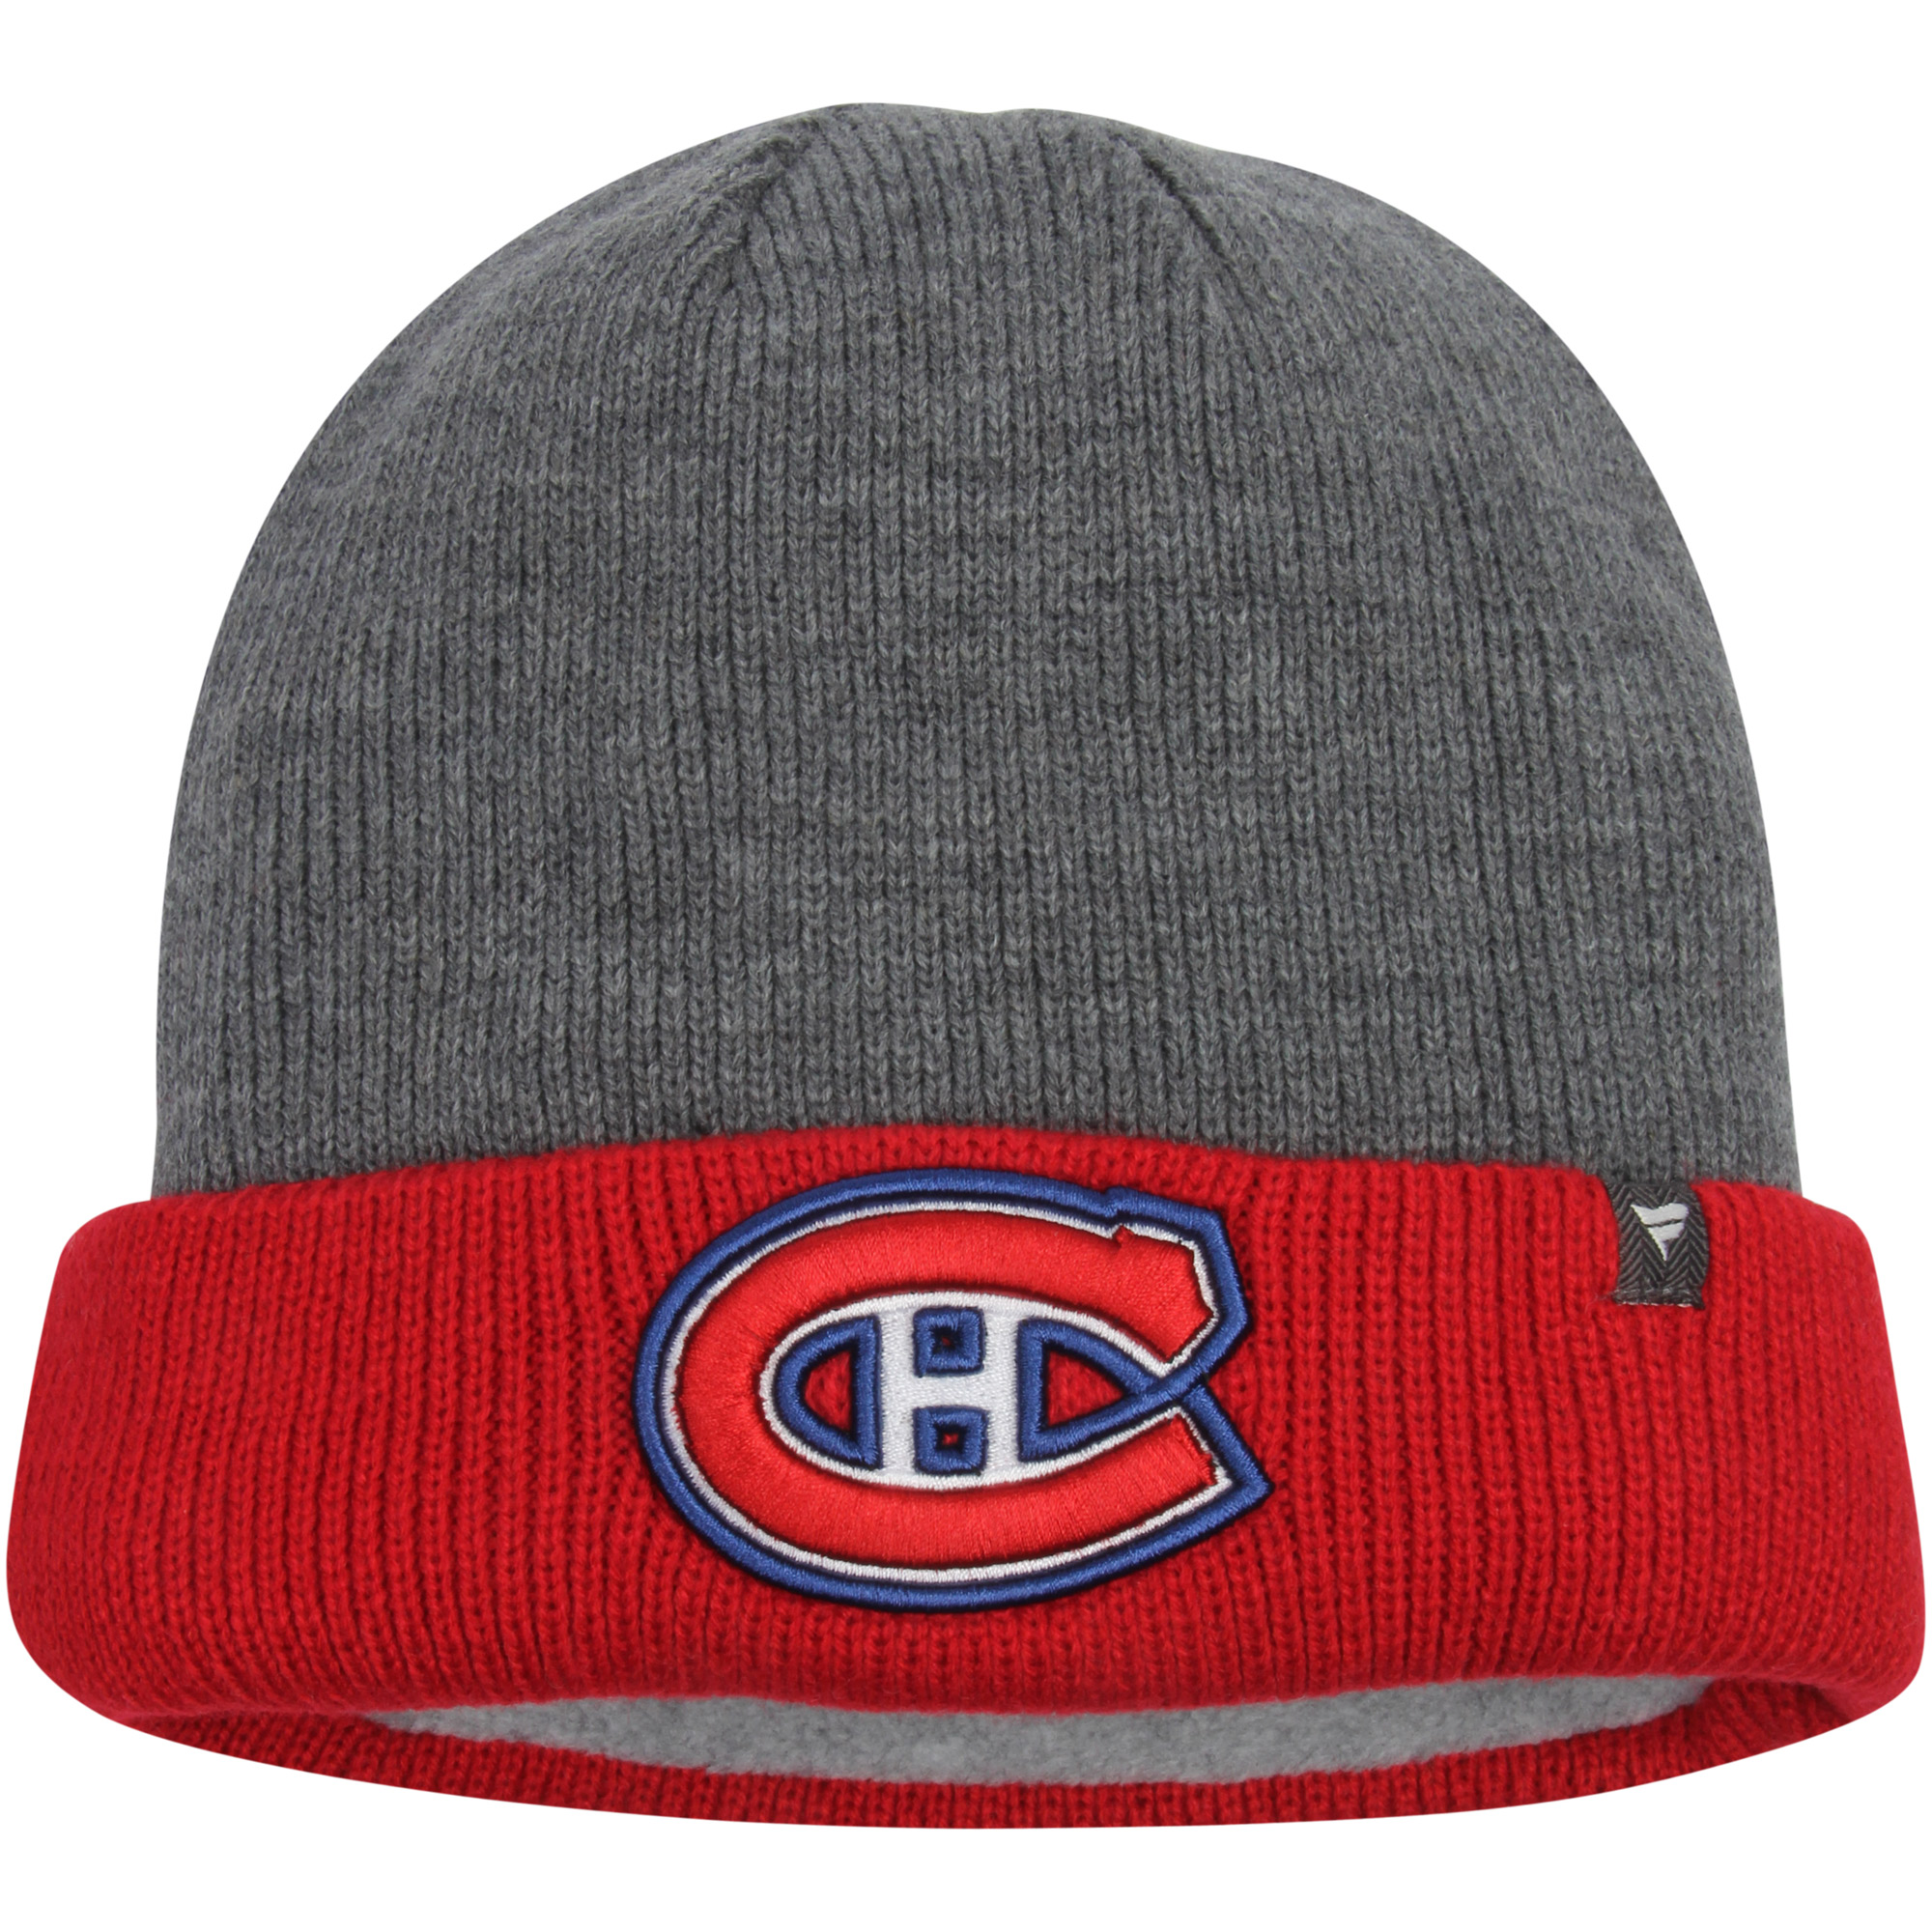 Montreal Canadiens Heavyweight Cuffed Knit Hat - Charcoal/Red - OSFA